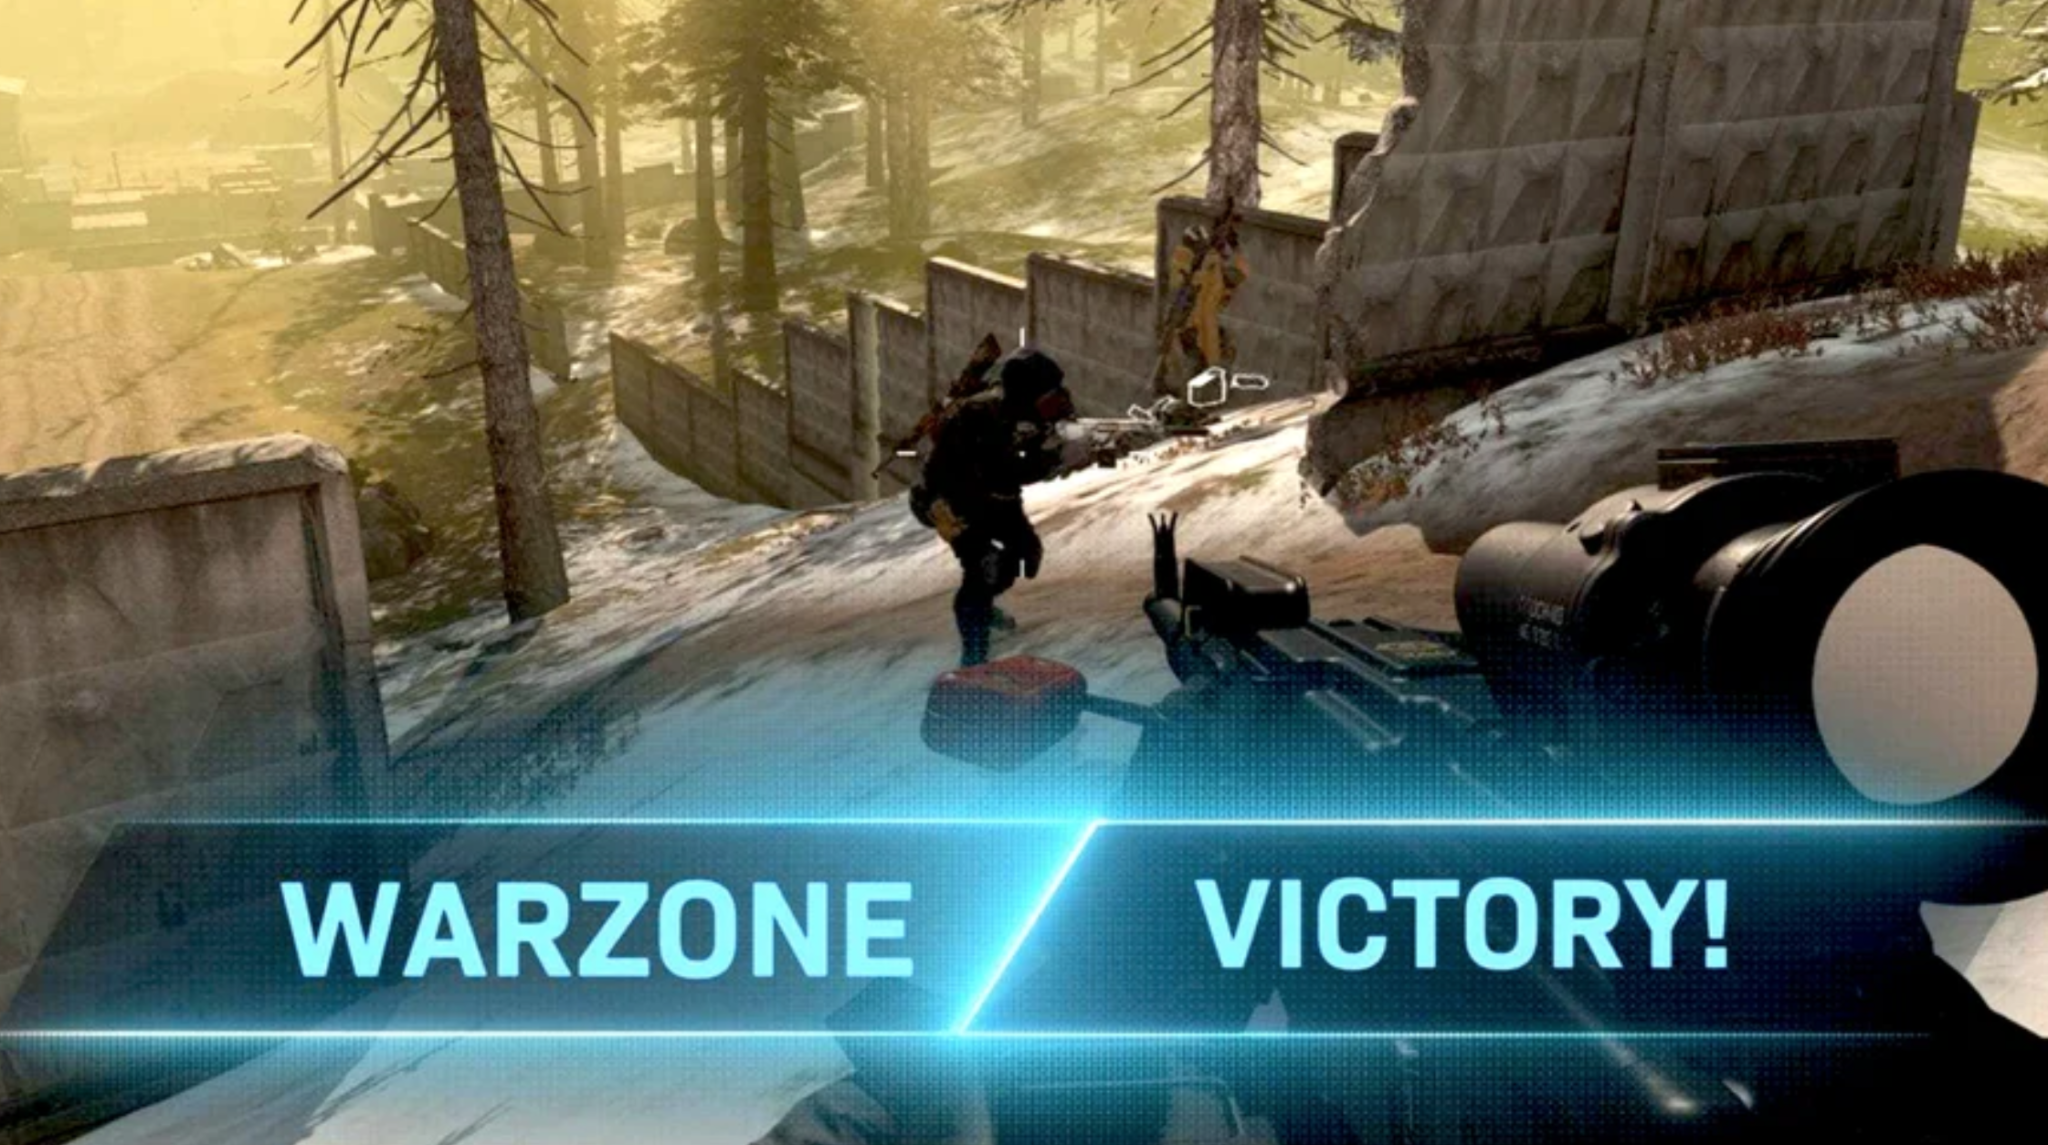 Message in Call of Duty after getting Warzone victory.